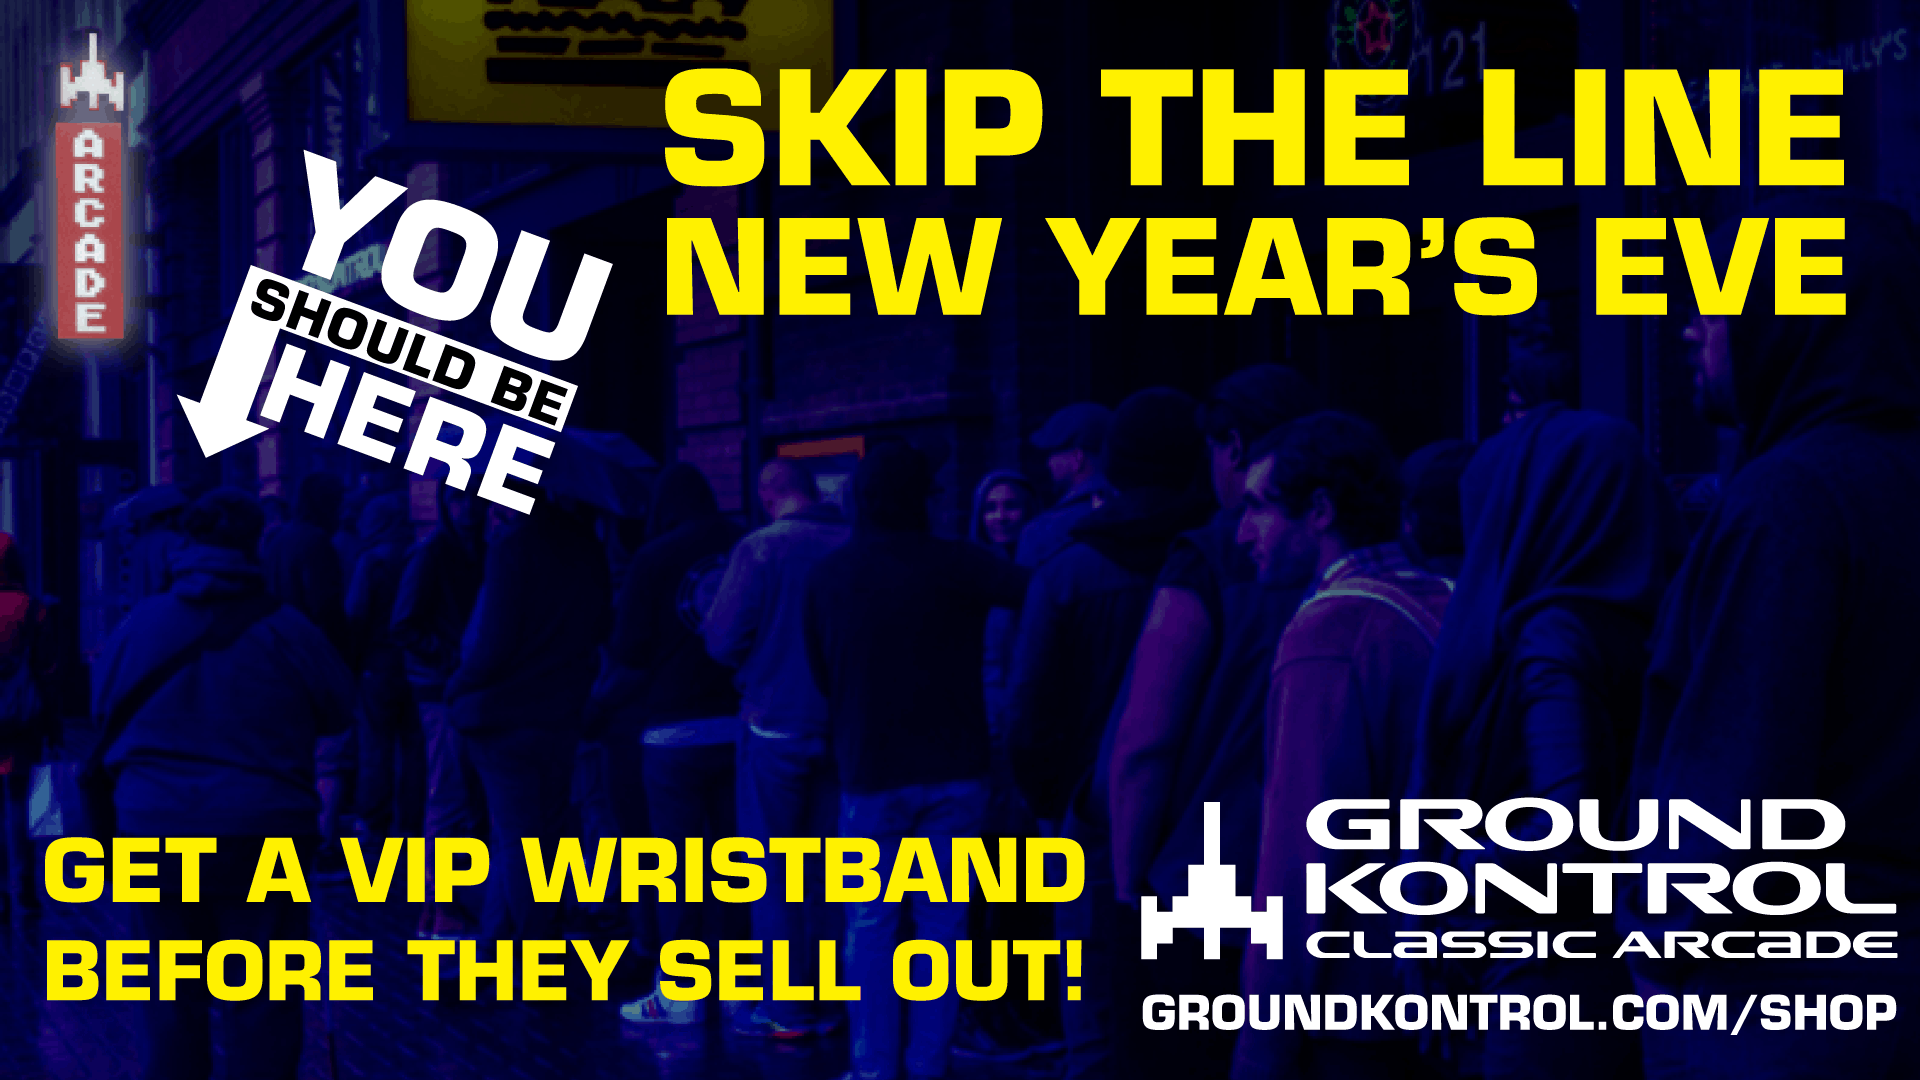 Now Available: New Year's Eve 2018 VIP Wristbands – While They Last!